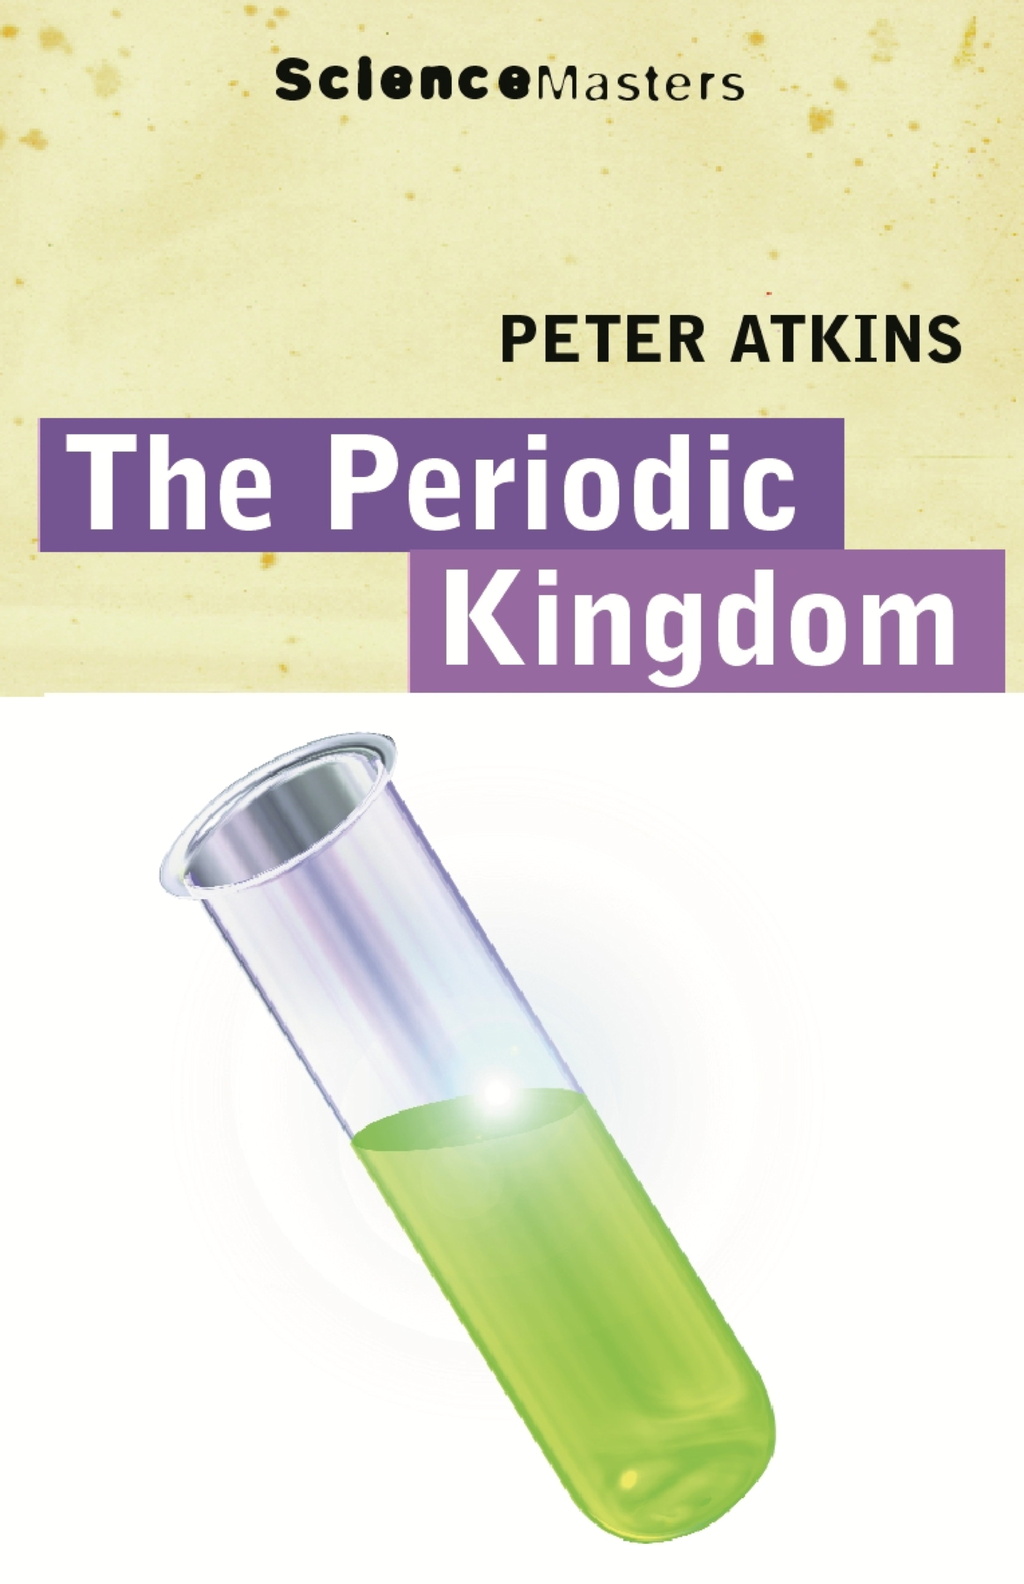 The Periodic Kingdom A Journey Into the Land of the Chemical Elements